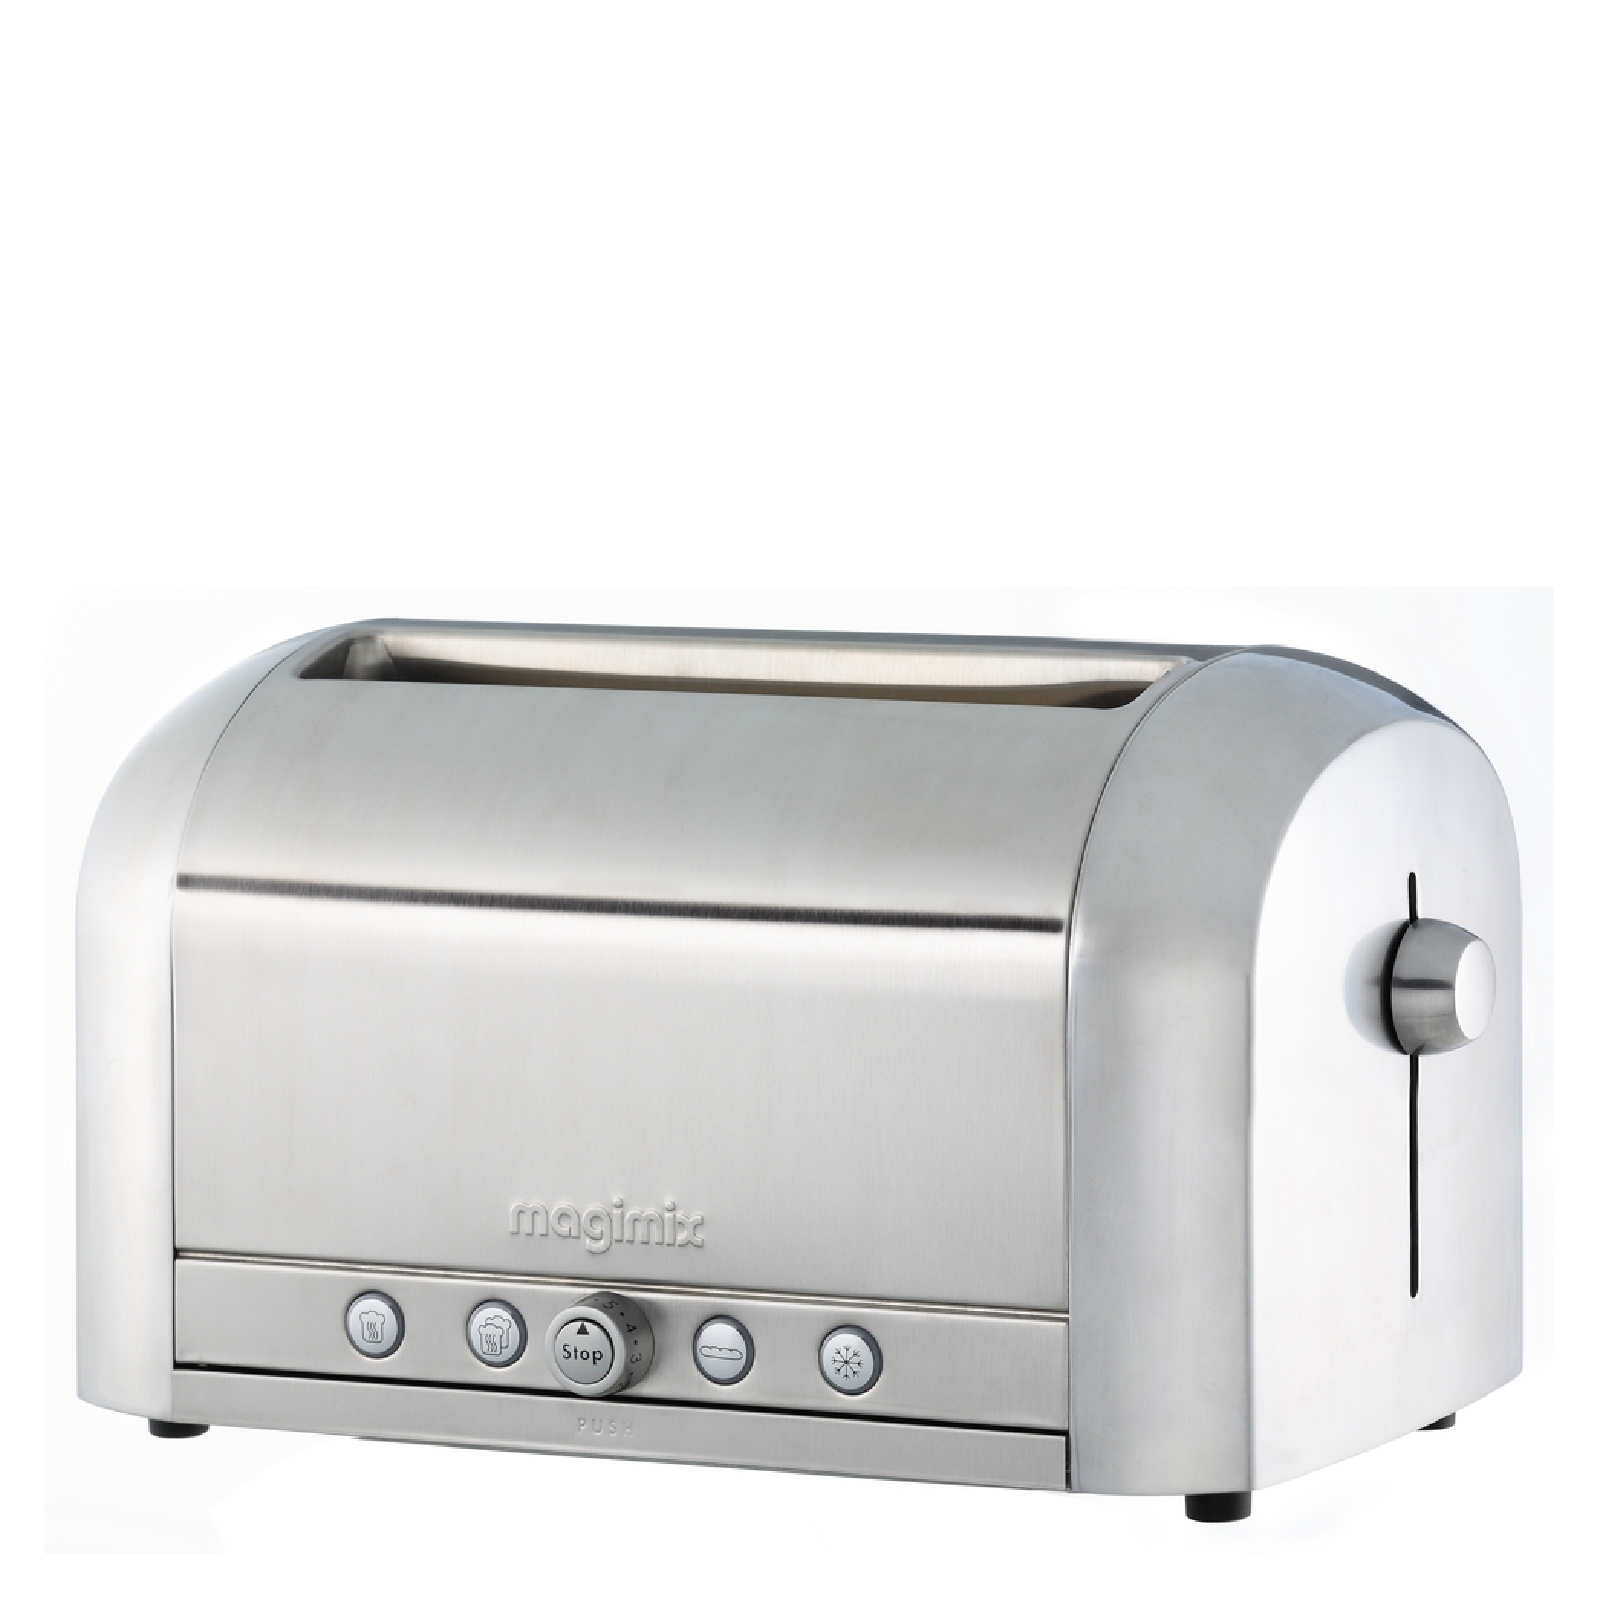 Magimix 11536 4 Slice Brushed Toaster - Stainless Steel